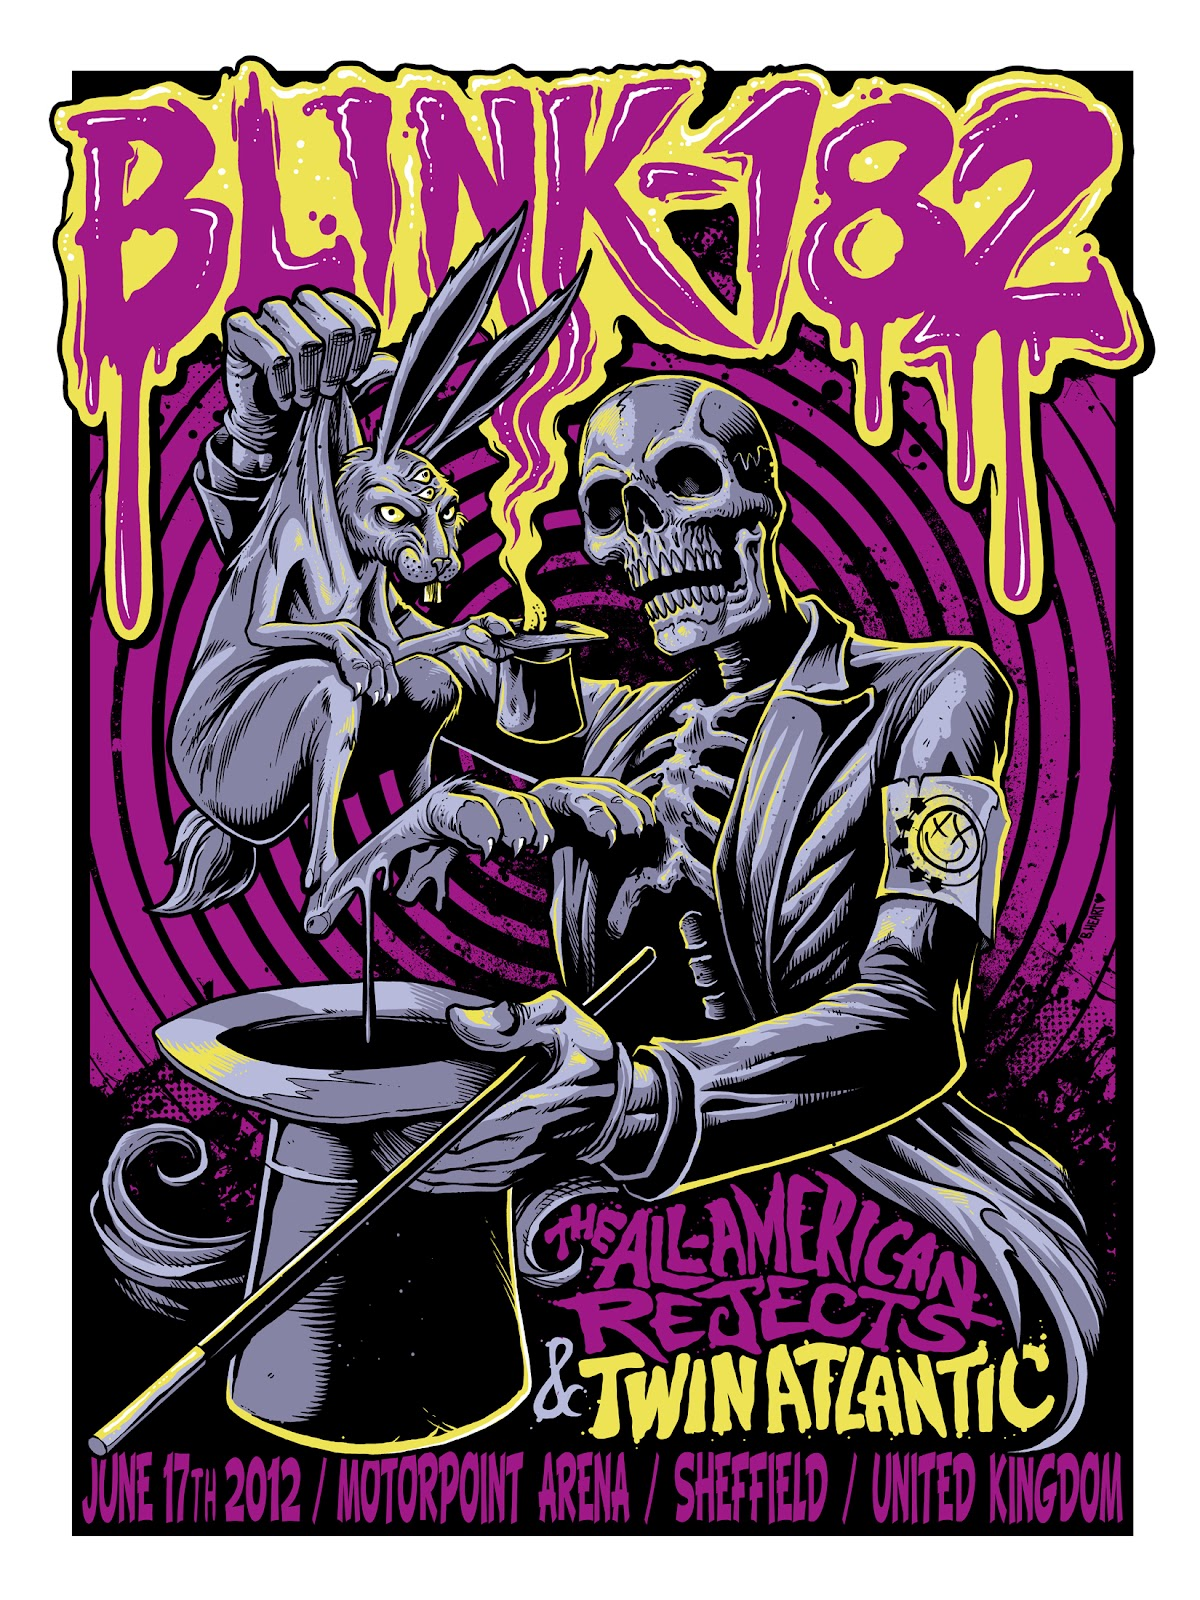 Will Blink  Tour In